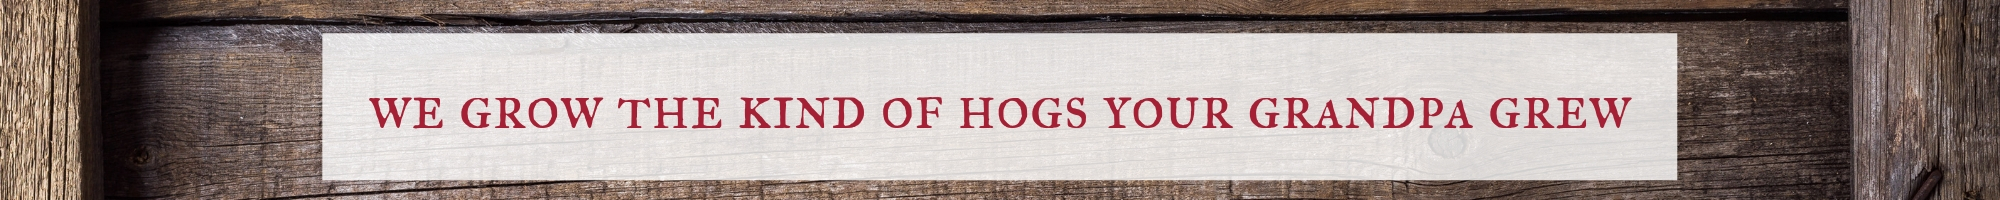 Our farm takes pride in our hogs